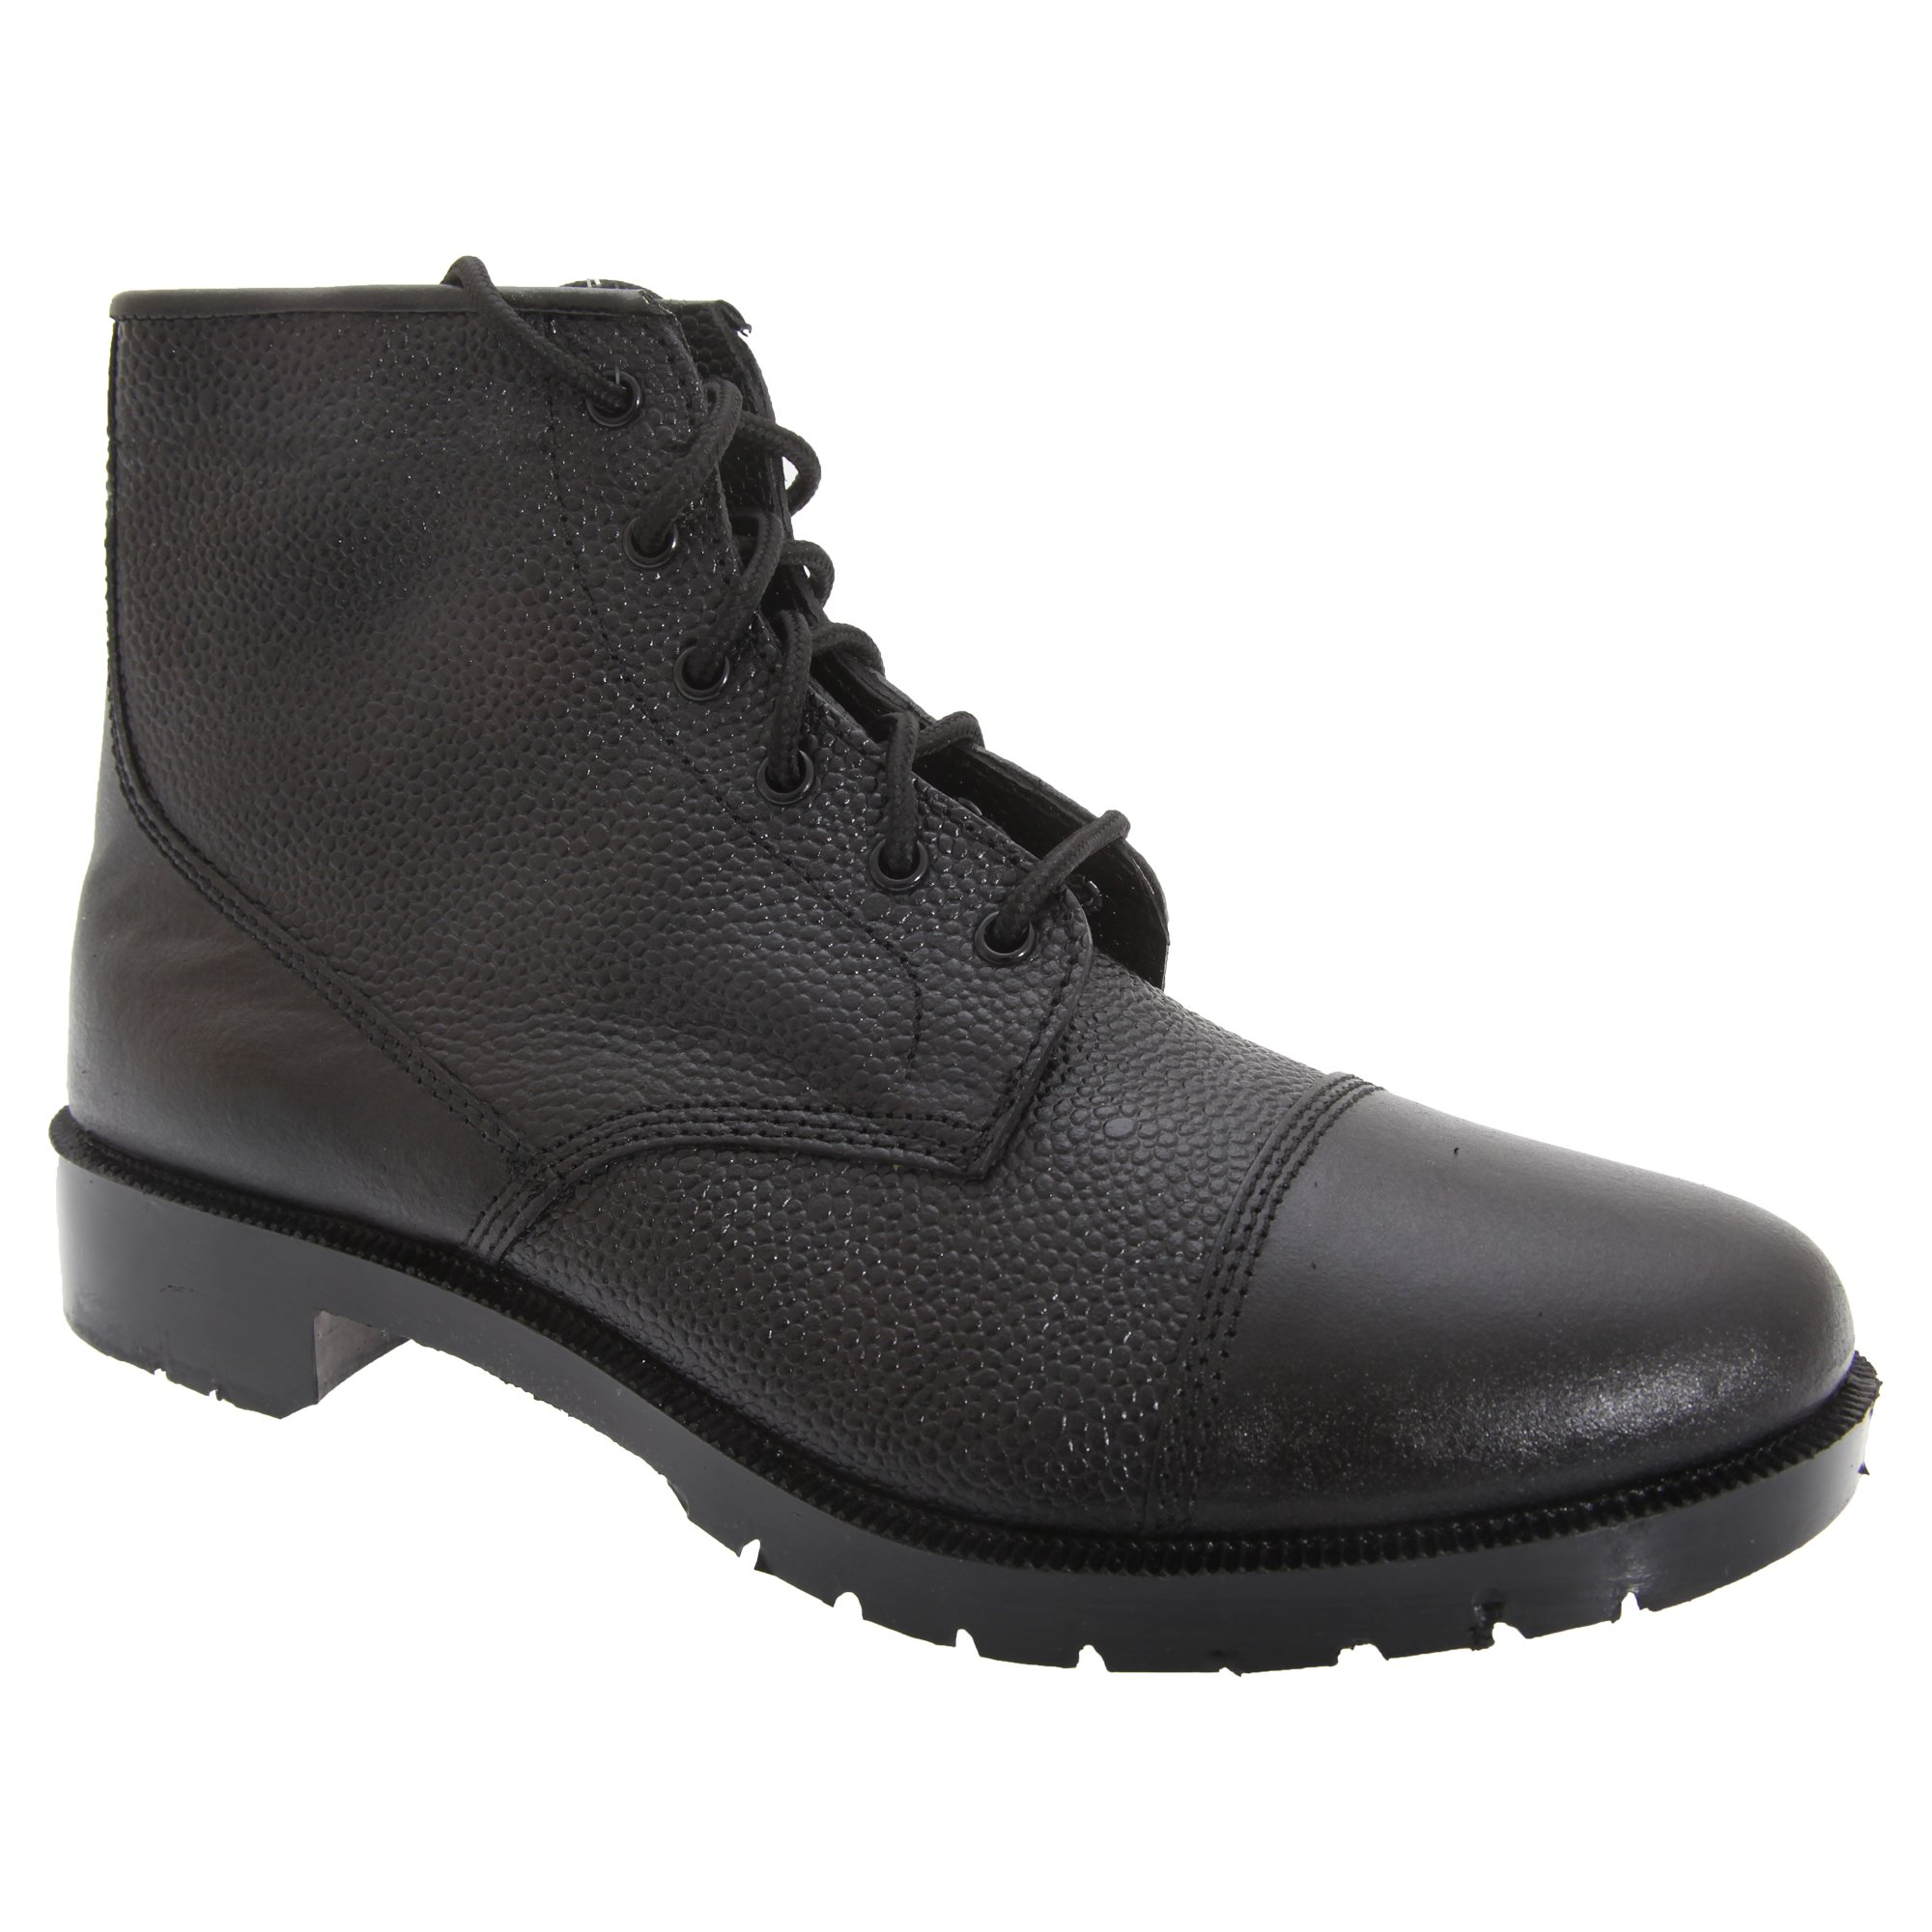 Grafters Mens Grain Leather 6 Eye Cadet Boots (5 US) (Black)